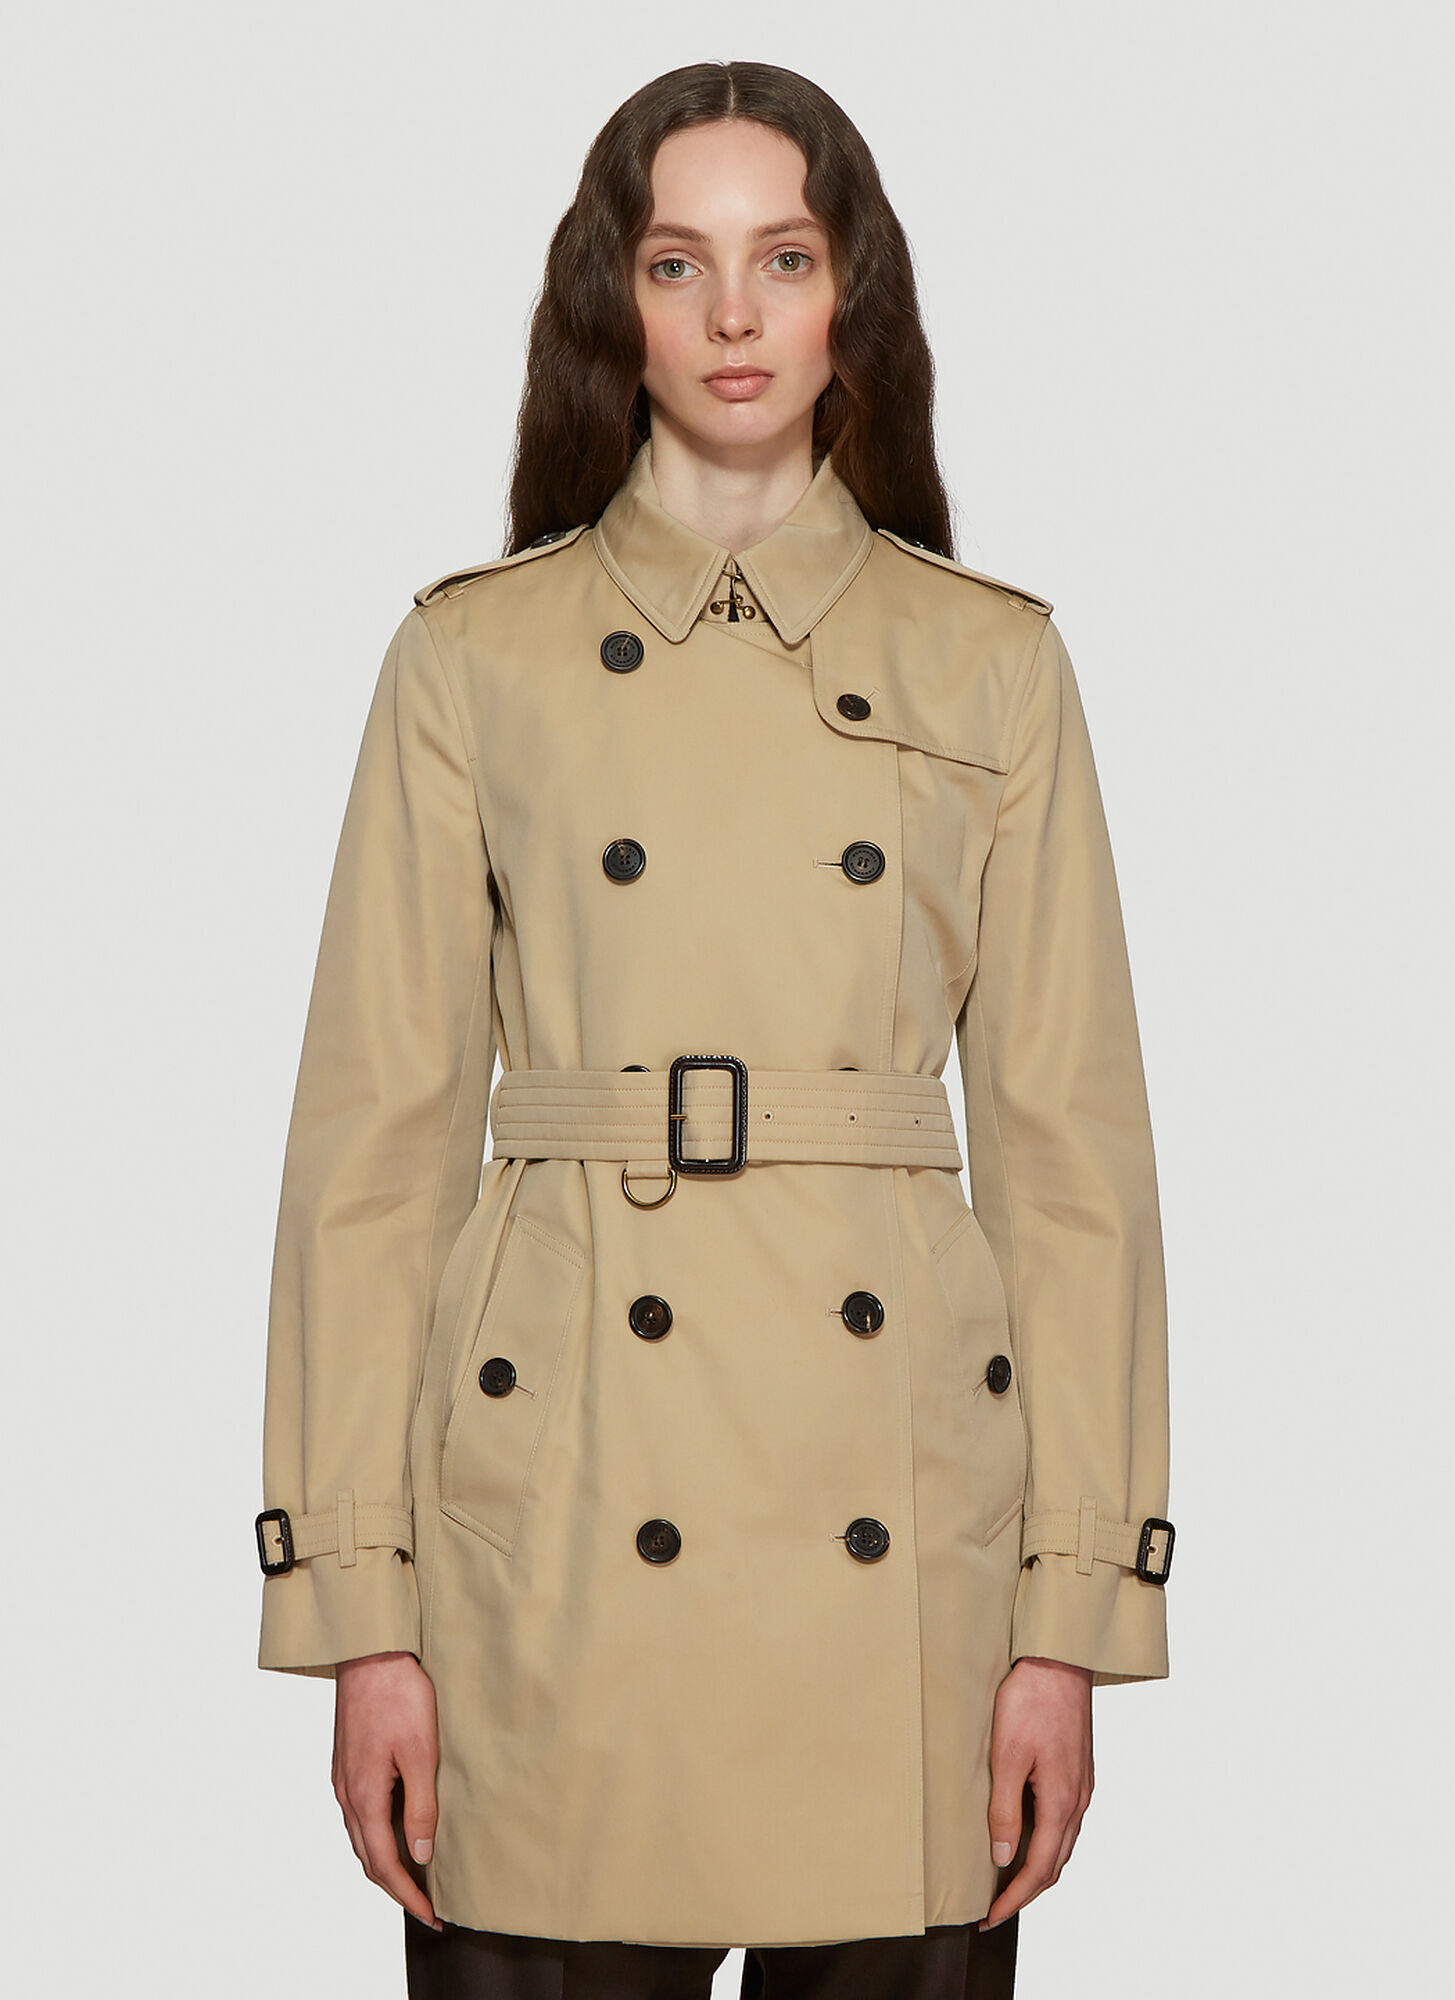 Burberry Kensington Heritage Trench Coat in Brown